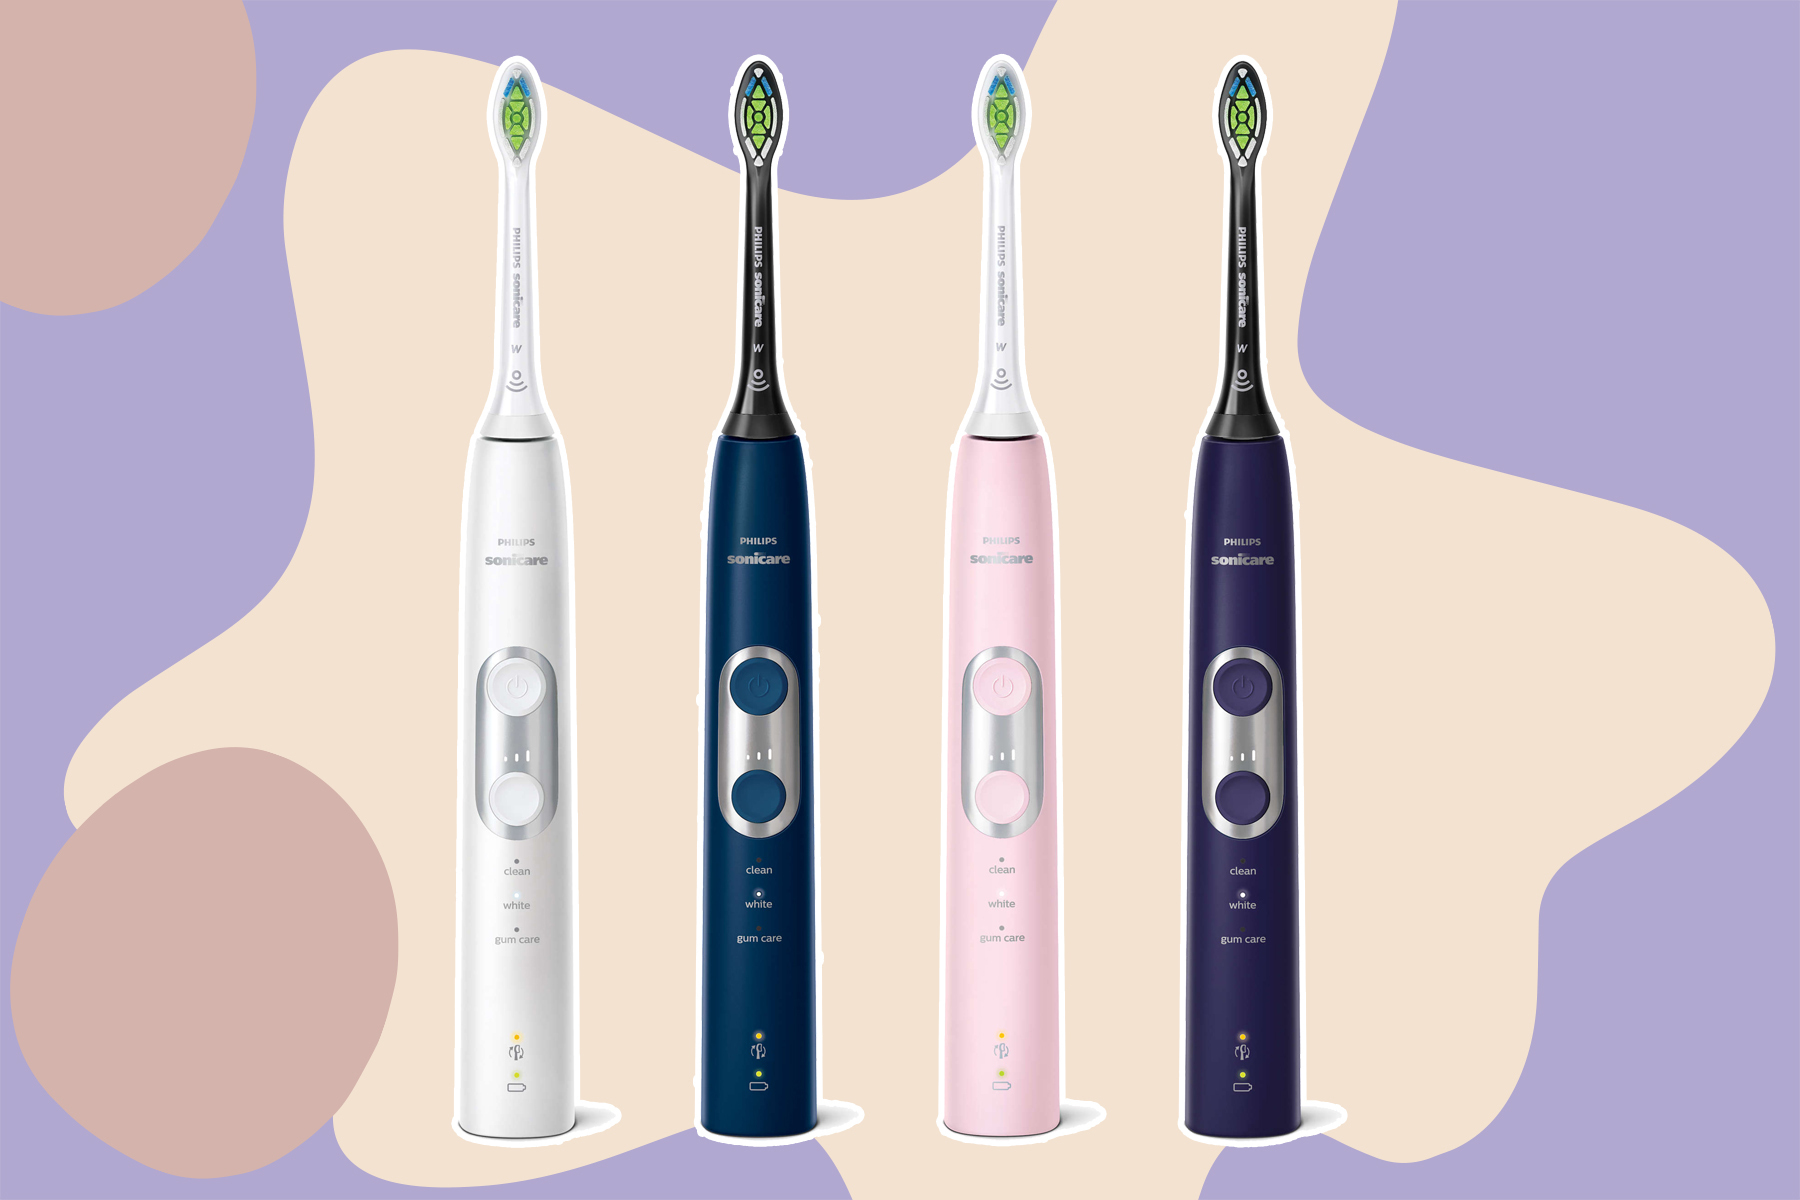 philipsc toothbrush review